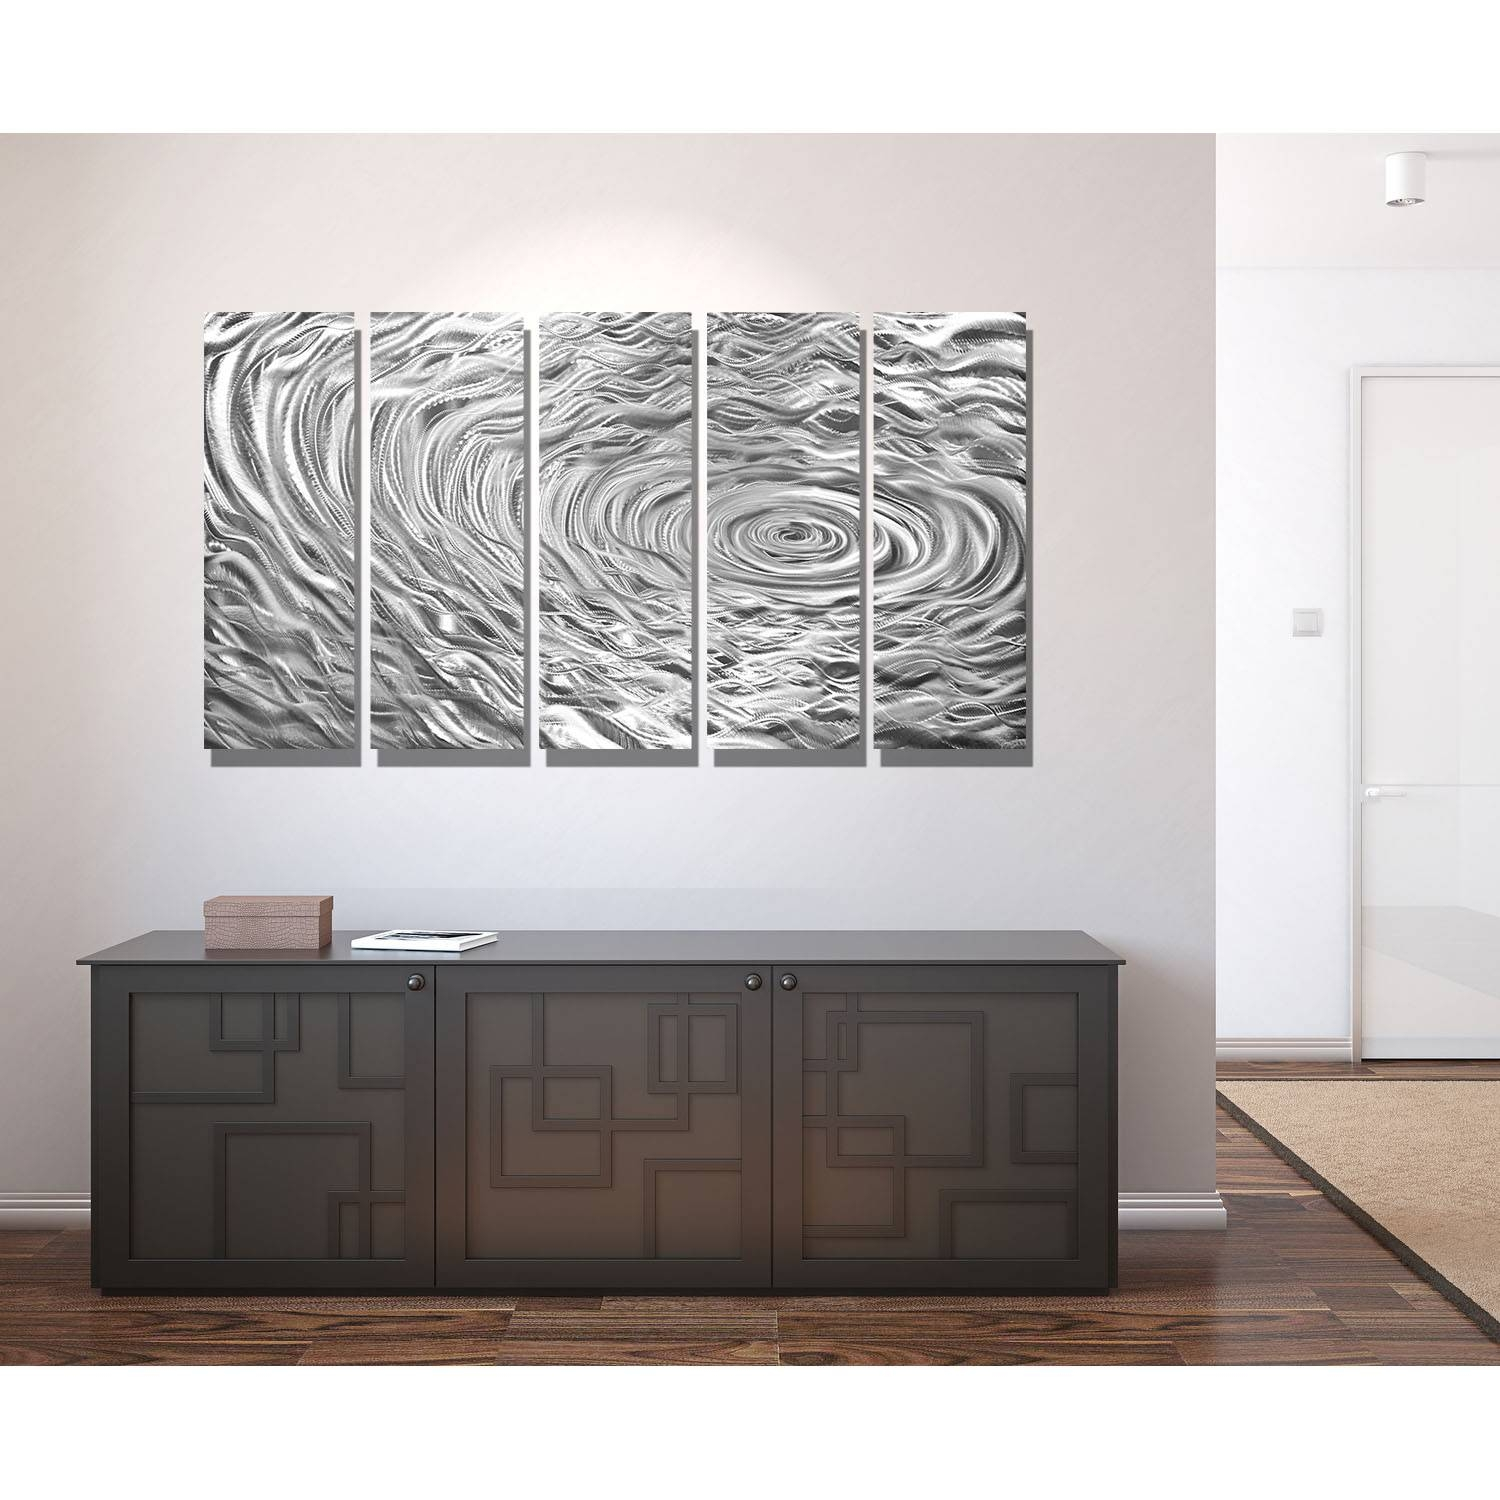 Silver Swell – Silver Metal Wall Art – 5 Panel Wall Décorjon For Latest Silver Metal Wall Art (View 5 of 20)